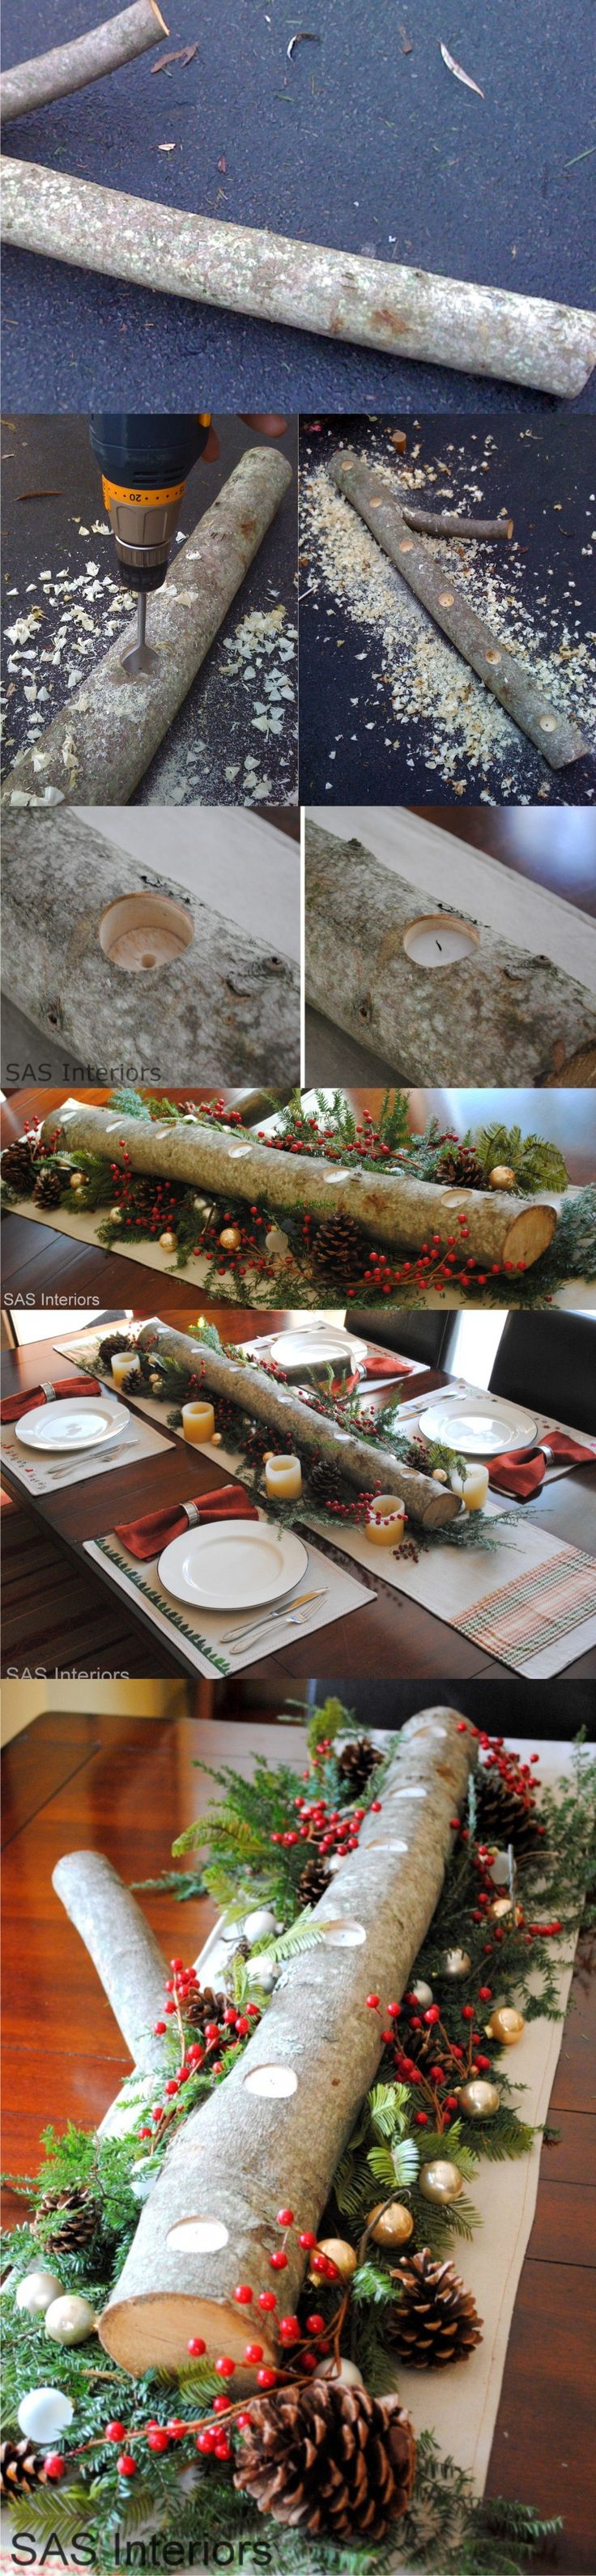 Centro de mesa para Navidad - jennaburger.com - Christmas table centerpiece